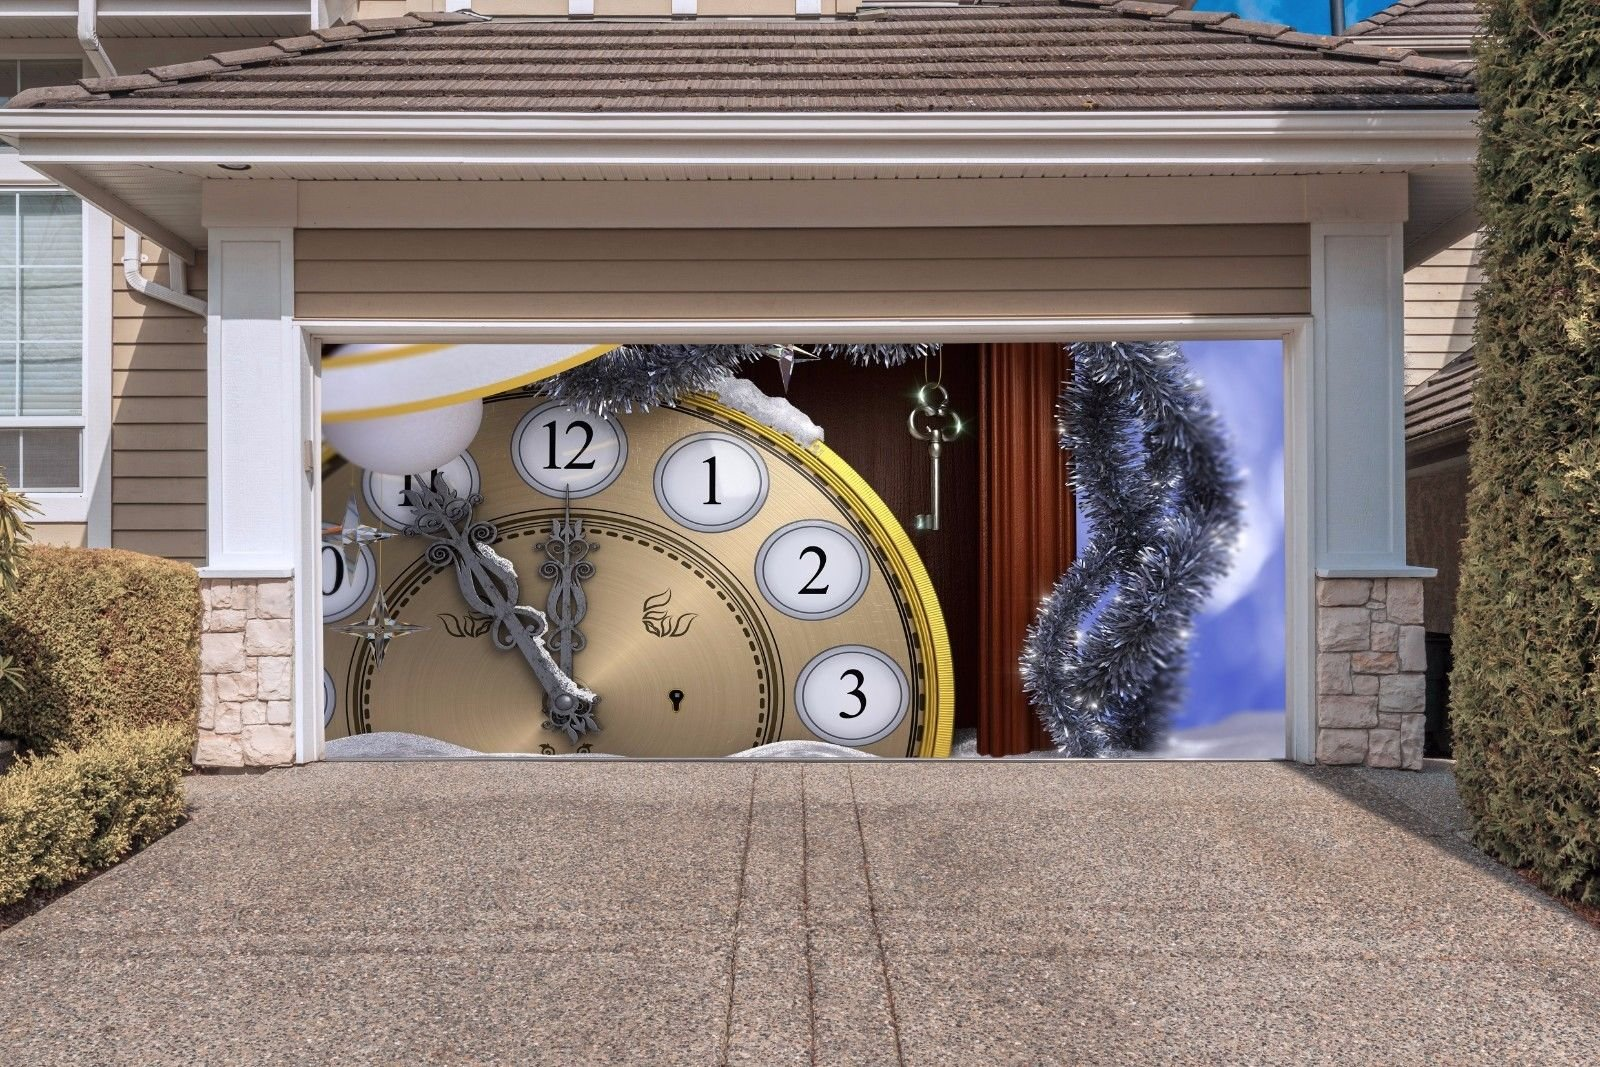 Christmas Clock Garage Door Covers Banners Outdoor Billboard for 2 Car Garage Door Murals Holiday Full Color 3D Print Christmas Decorations House Decor size 82x188 inches DAV39